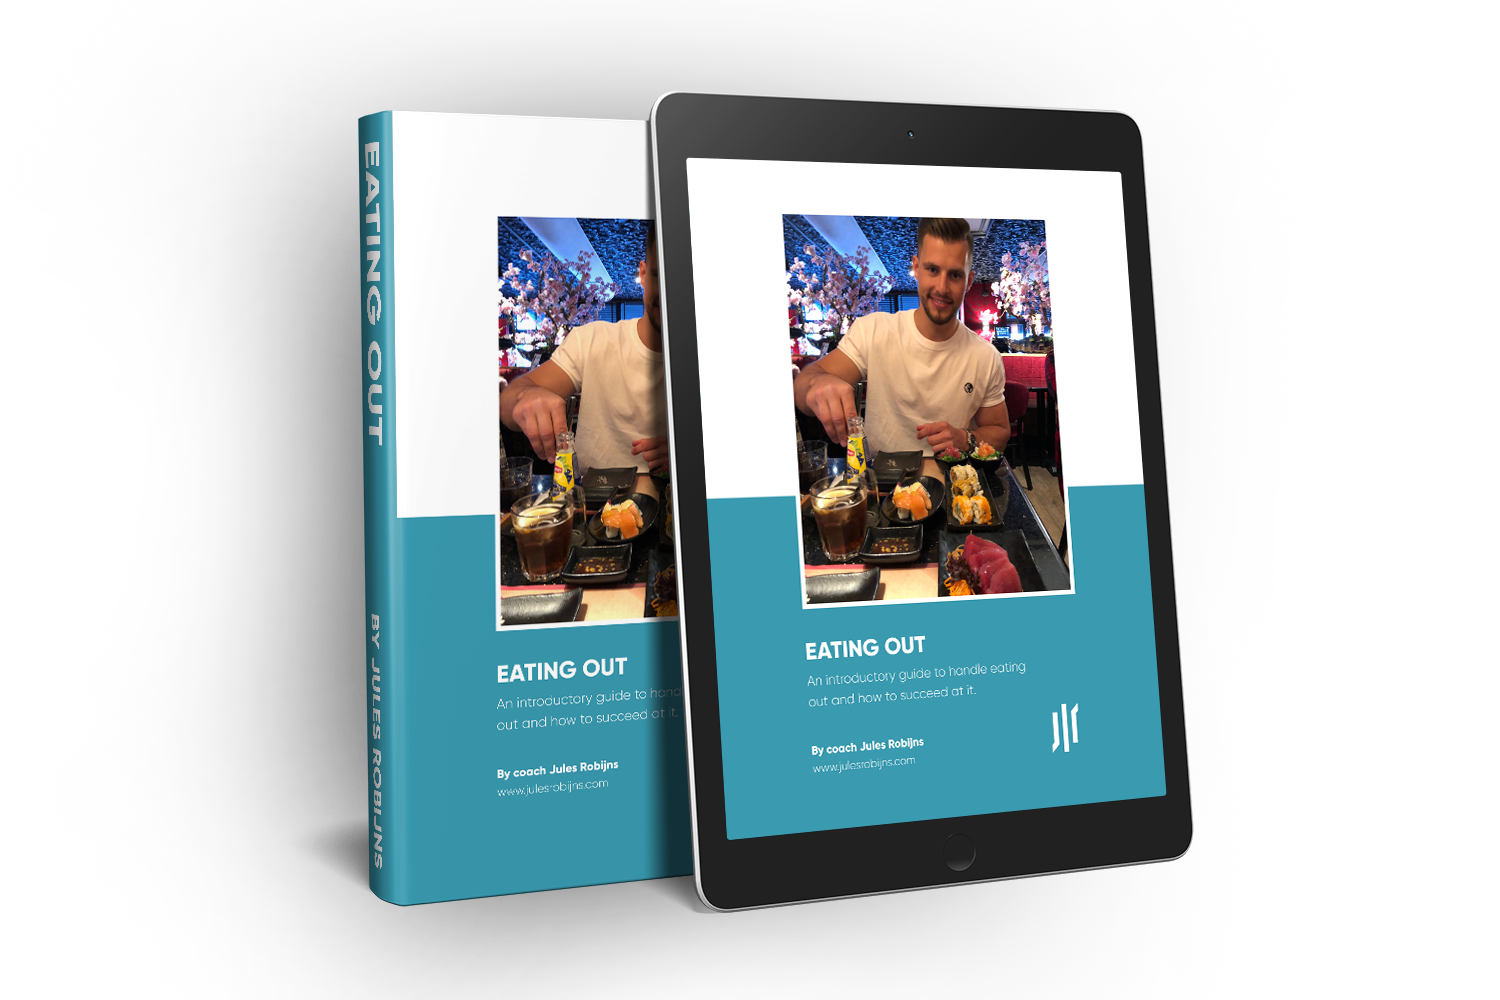 e-book eating out by jules robijns